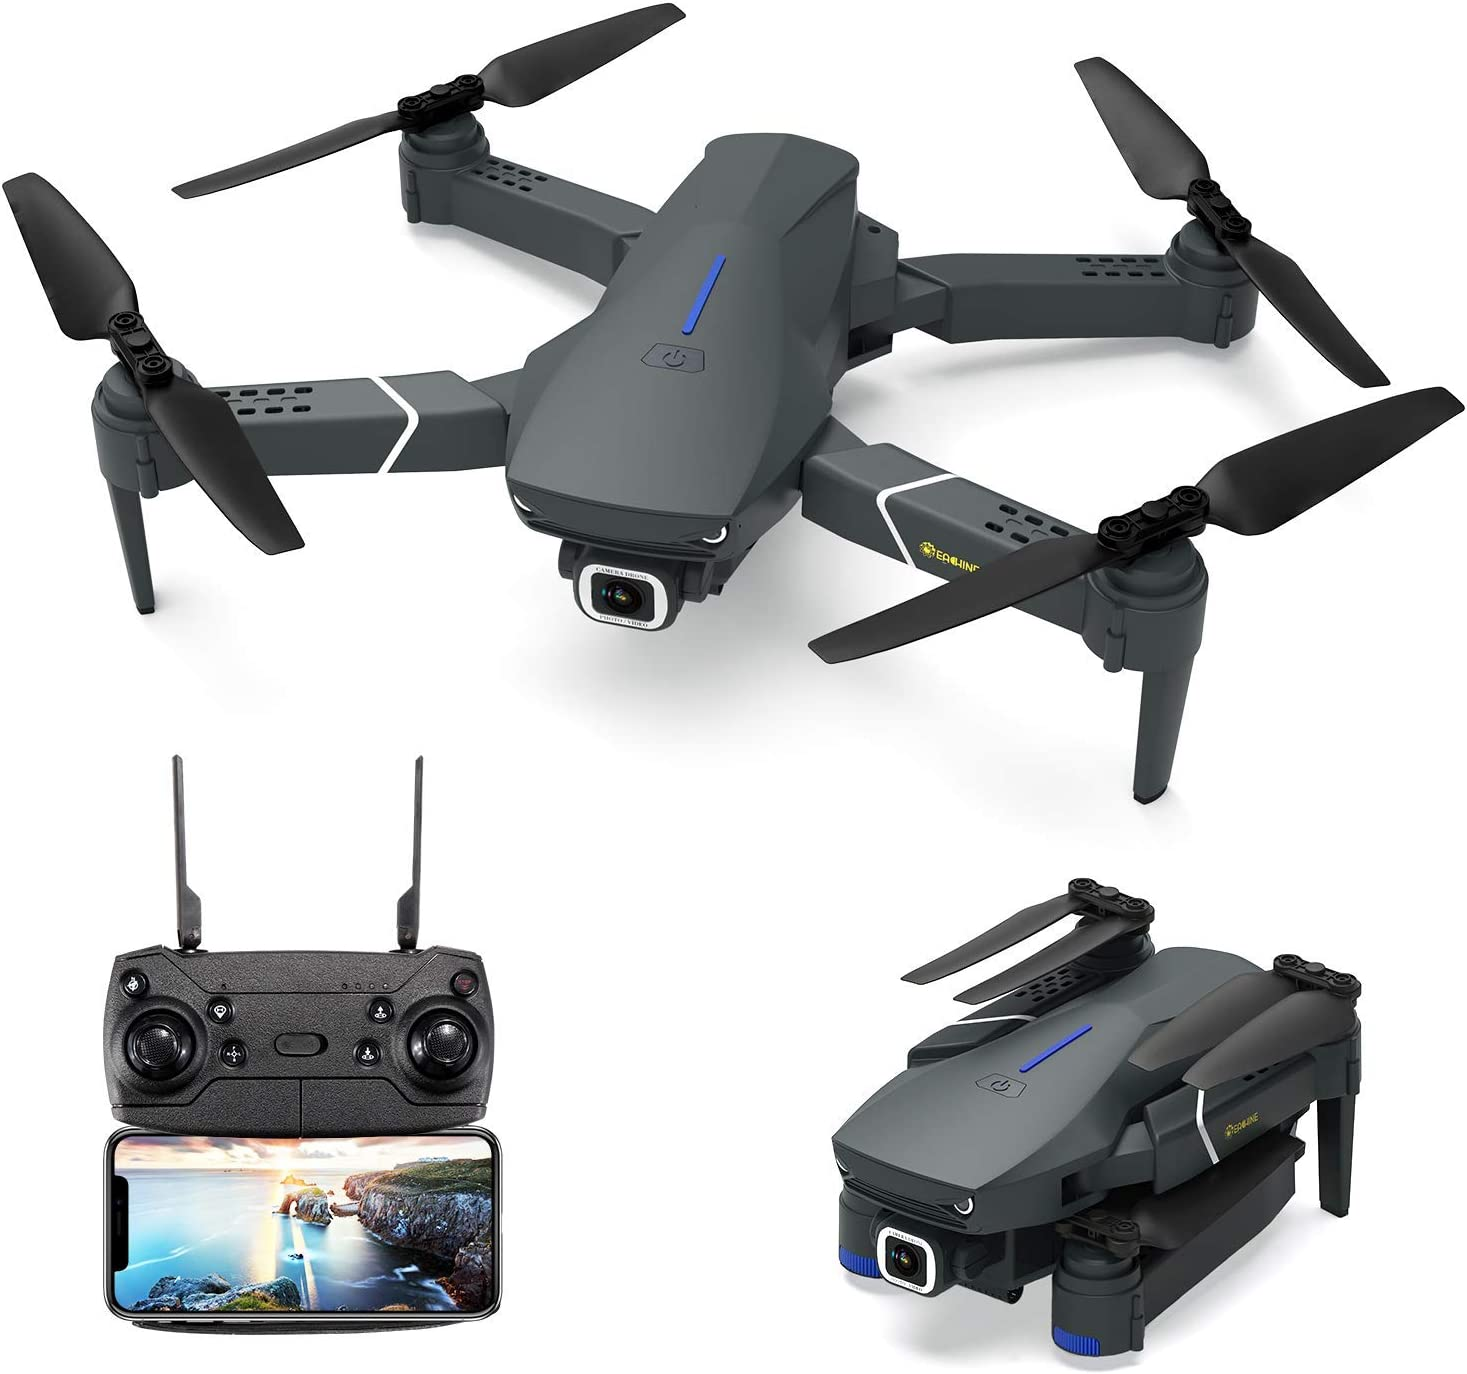 EACHINE E520 Drone with 4K Camera Live Video,WiFi FPV Drone for Adults with 4K HD 120° Wide Angle Camera 1200Mah...